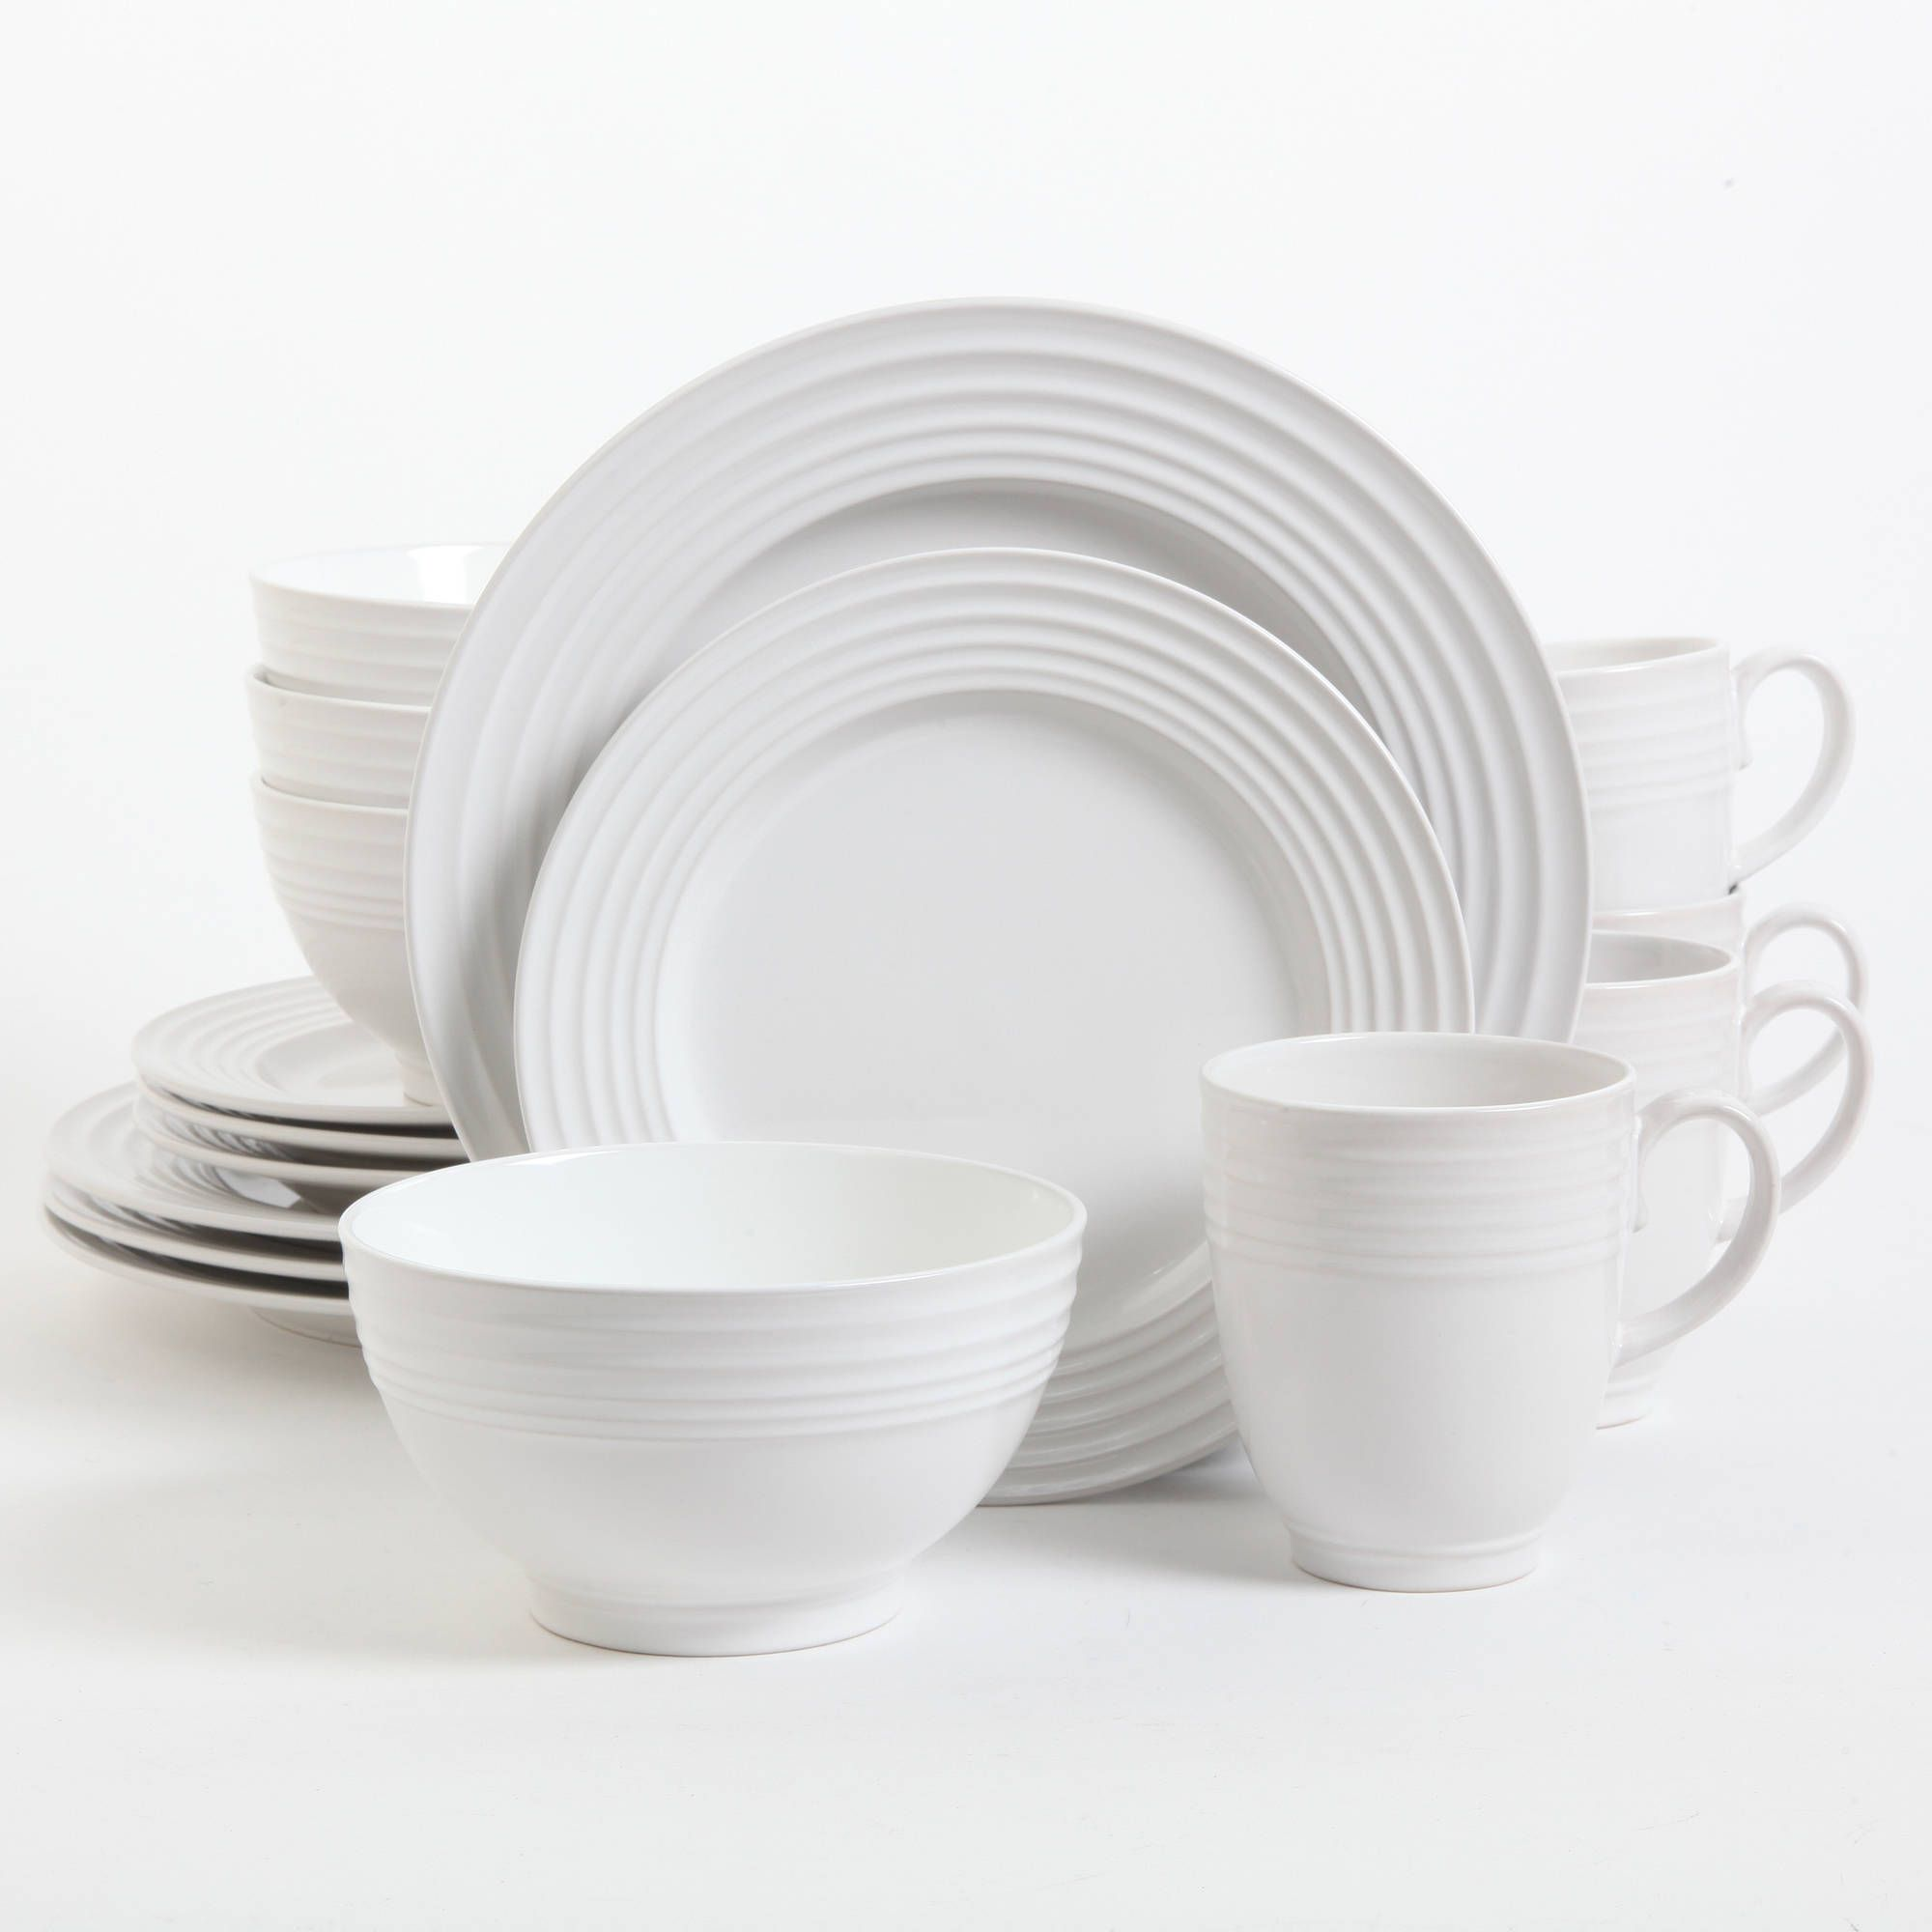 The Gibson Home Stanza 16-Piece Dinnerware Set will help you set the table with style. These elegant dishes offer the perfect way to make everyday meals ... & The Gibson Home Stanza 16-Piece Dinnerware Set will help you set the ...